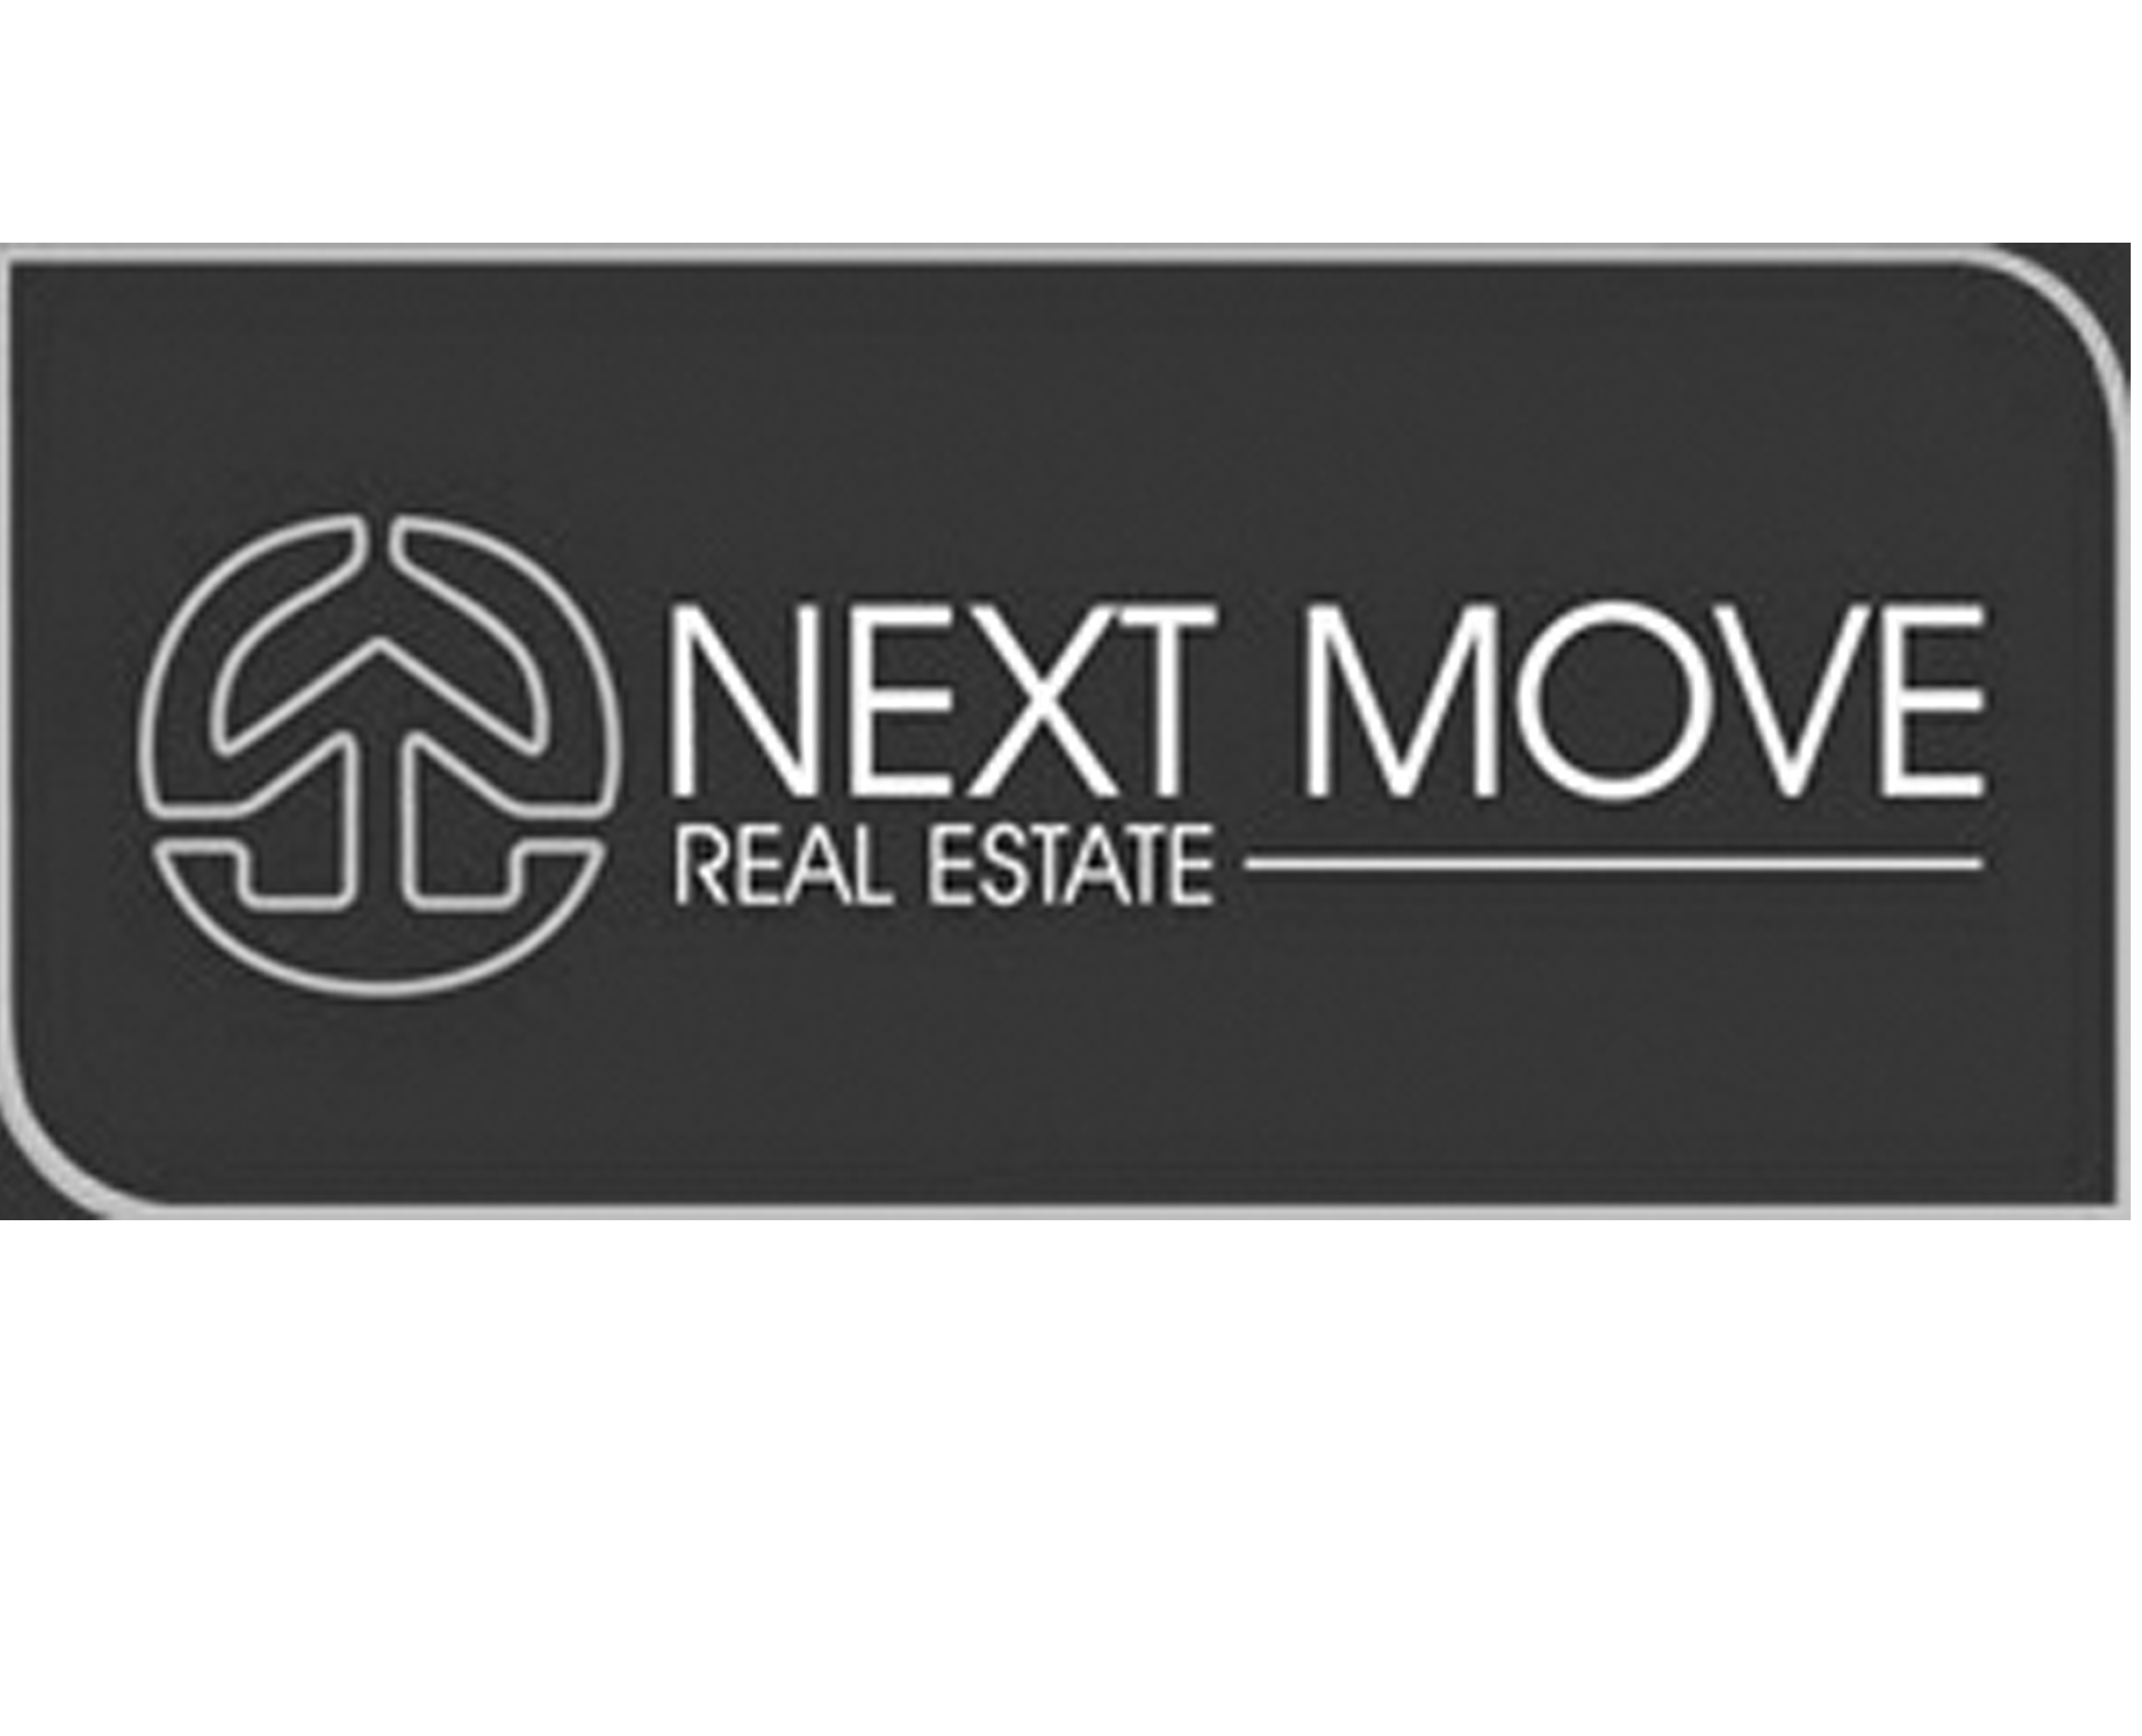 Next Move Real Estate